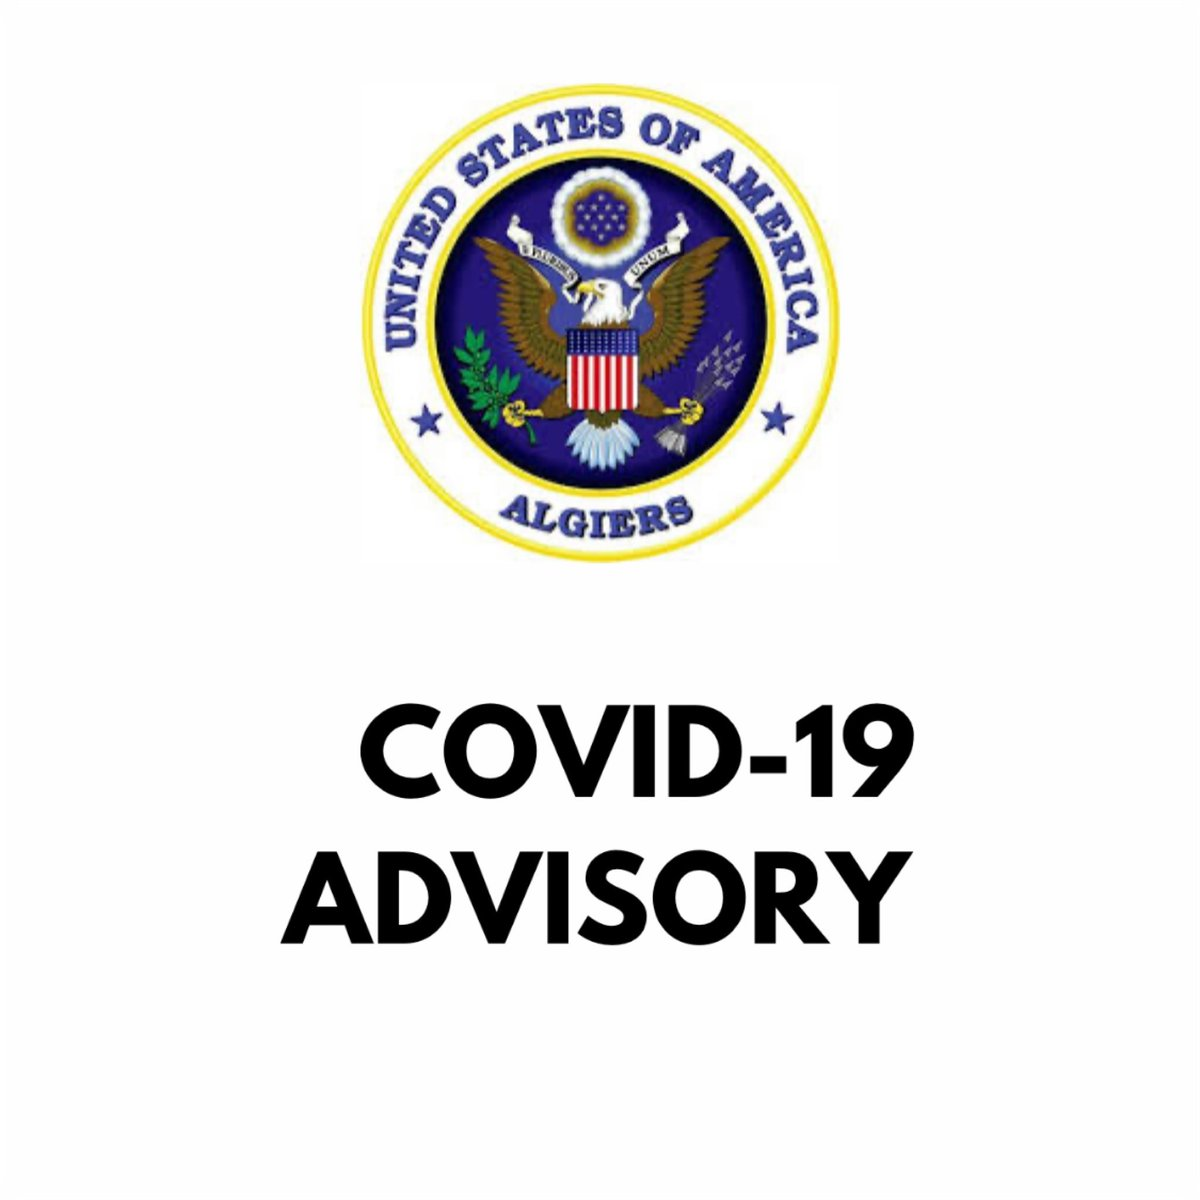 Click here for more information about #COVID19 advisory:  https://t.co/6iuhkHhmgj https://t.co/5CKkTuqTrV